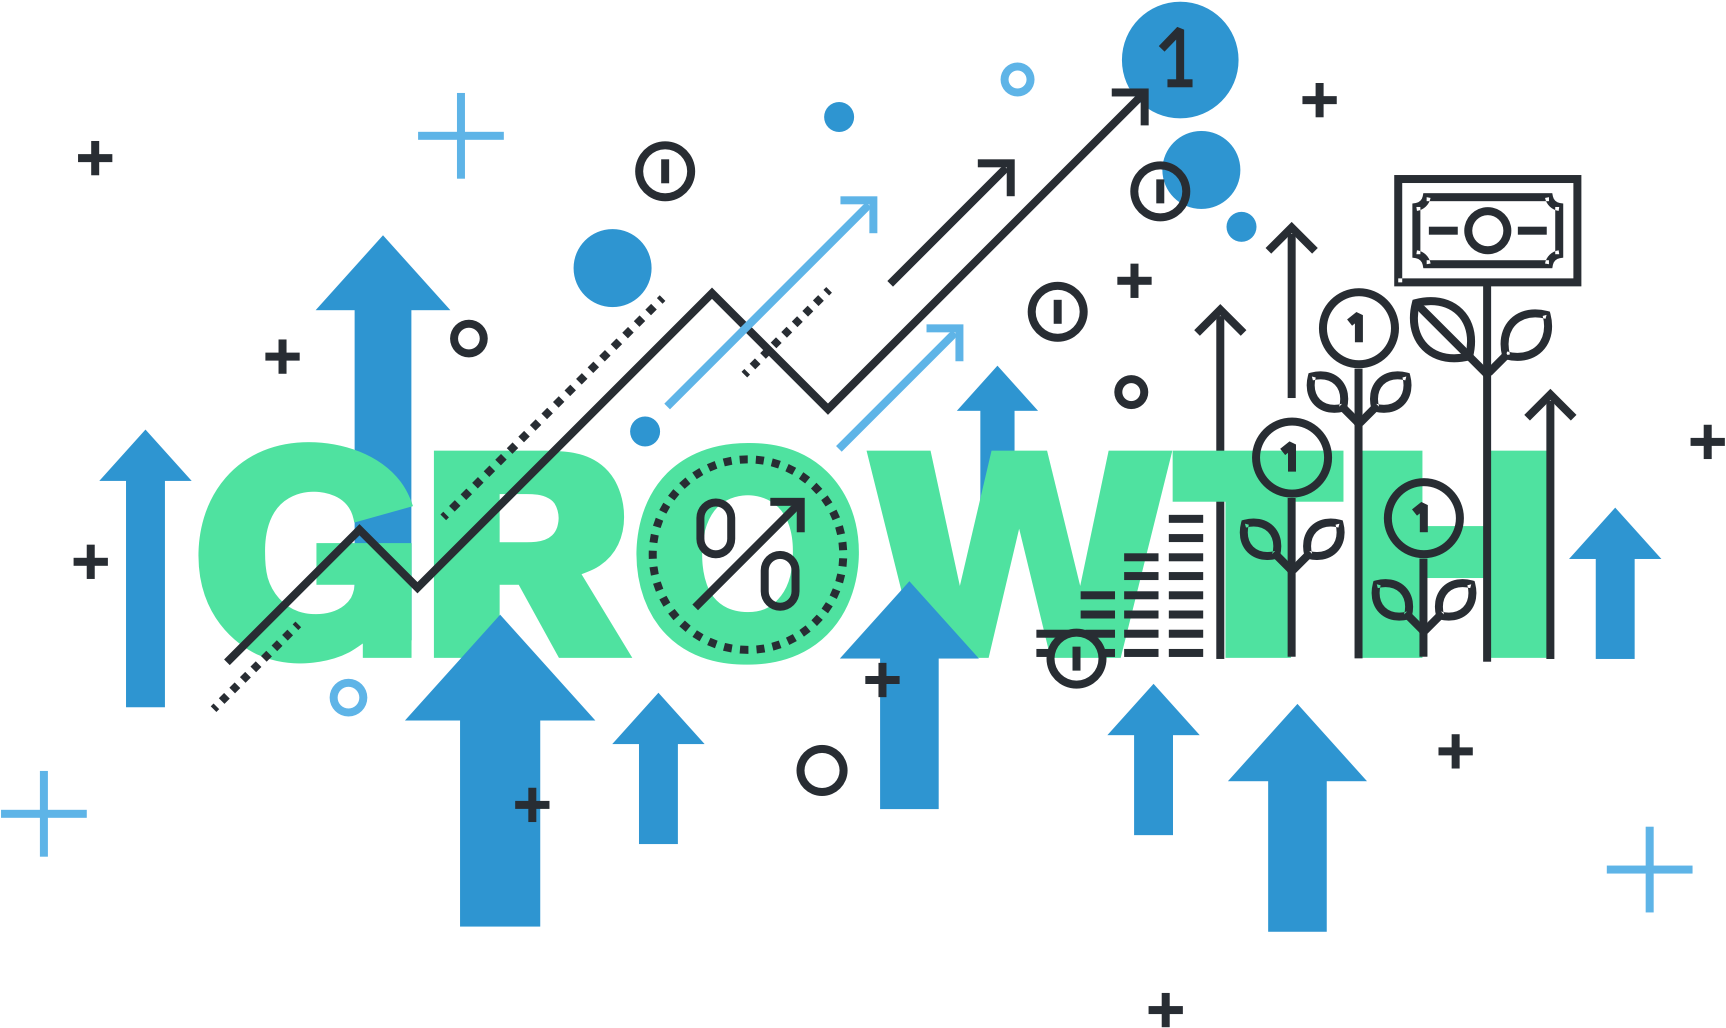 Growth illustration for small business growth through pay-per-click advertising.